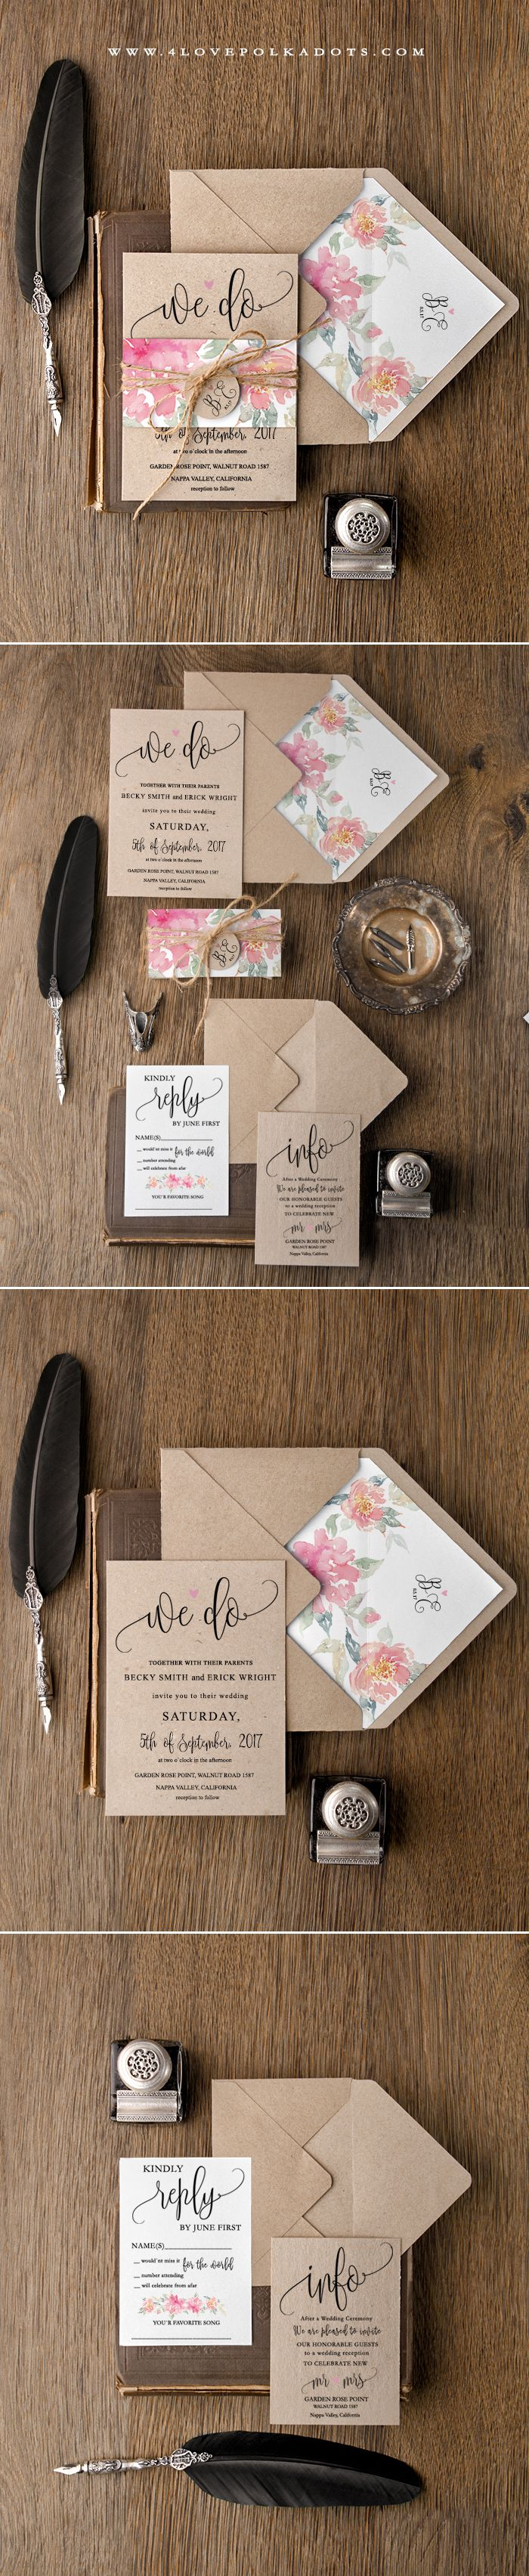 really like the unique layout on these Watercolor Wedding invitation